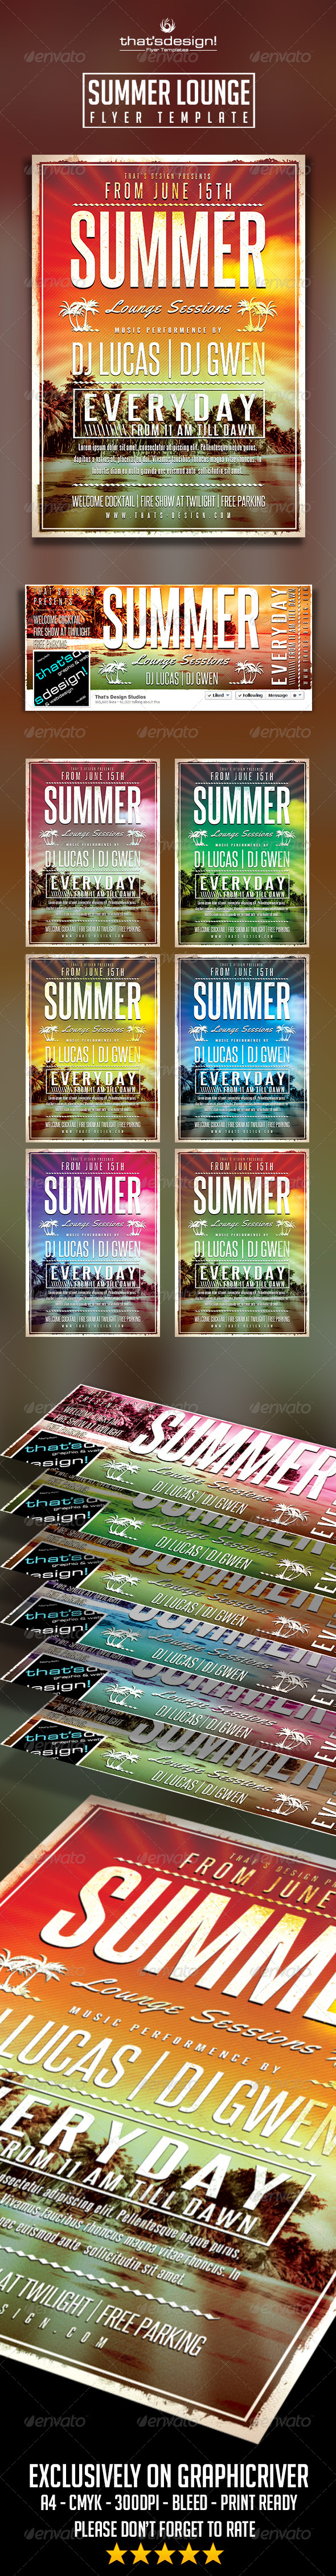 GraphicRiver Summer Lounge Flyer Template V2 8056290